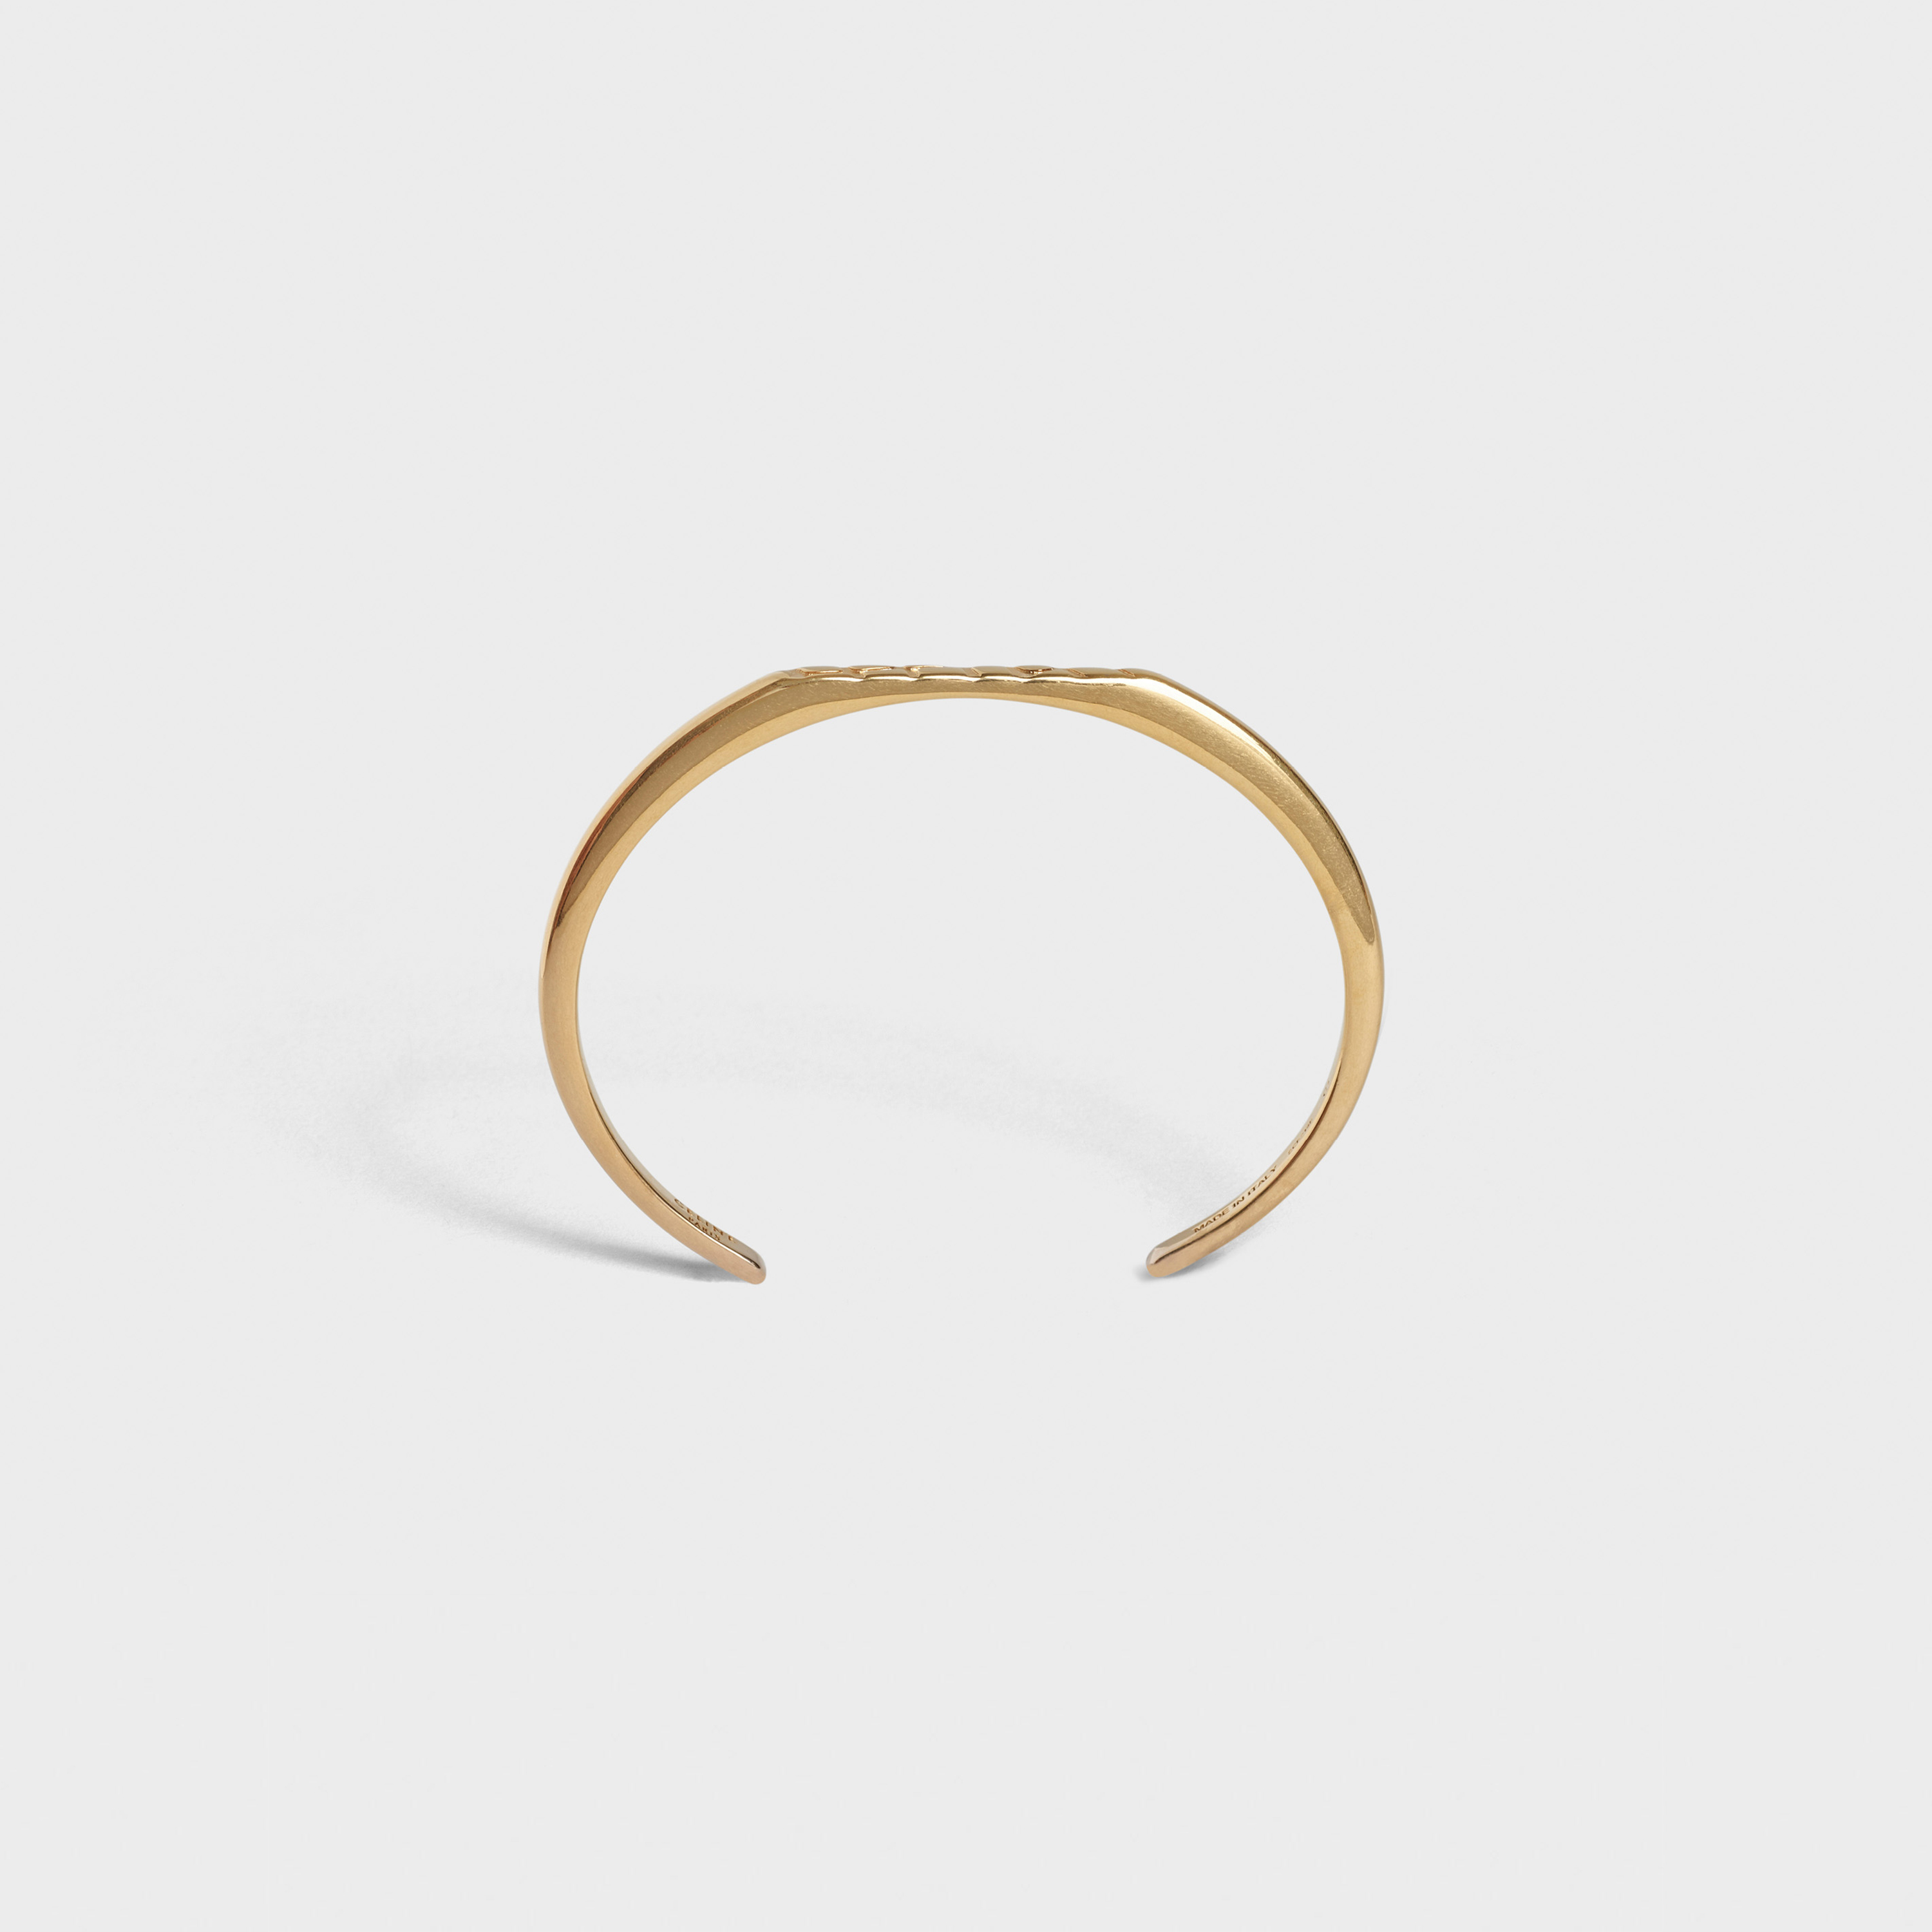 Celine Animals Flat Bracelet in Brass with Vintage Gold finish | CELINE